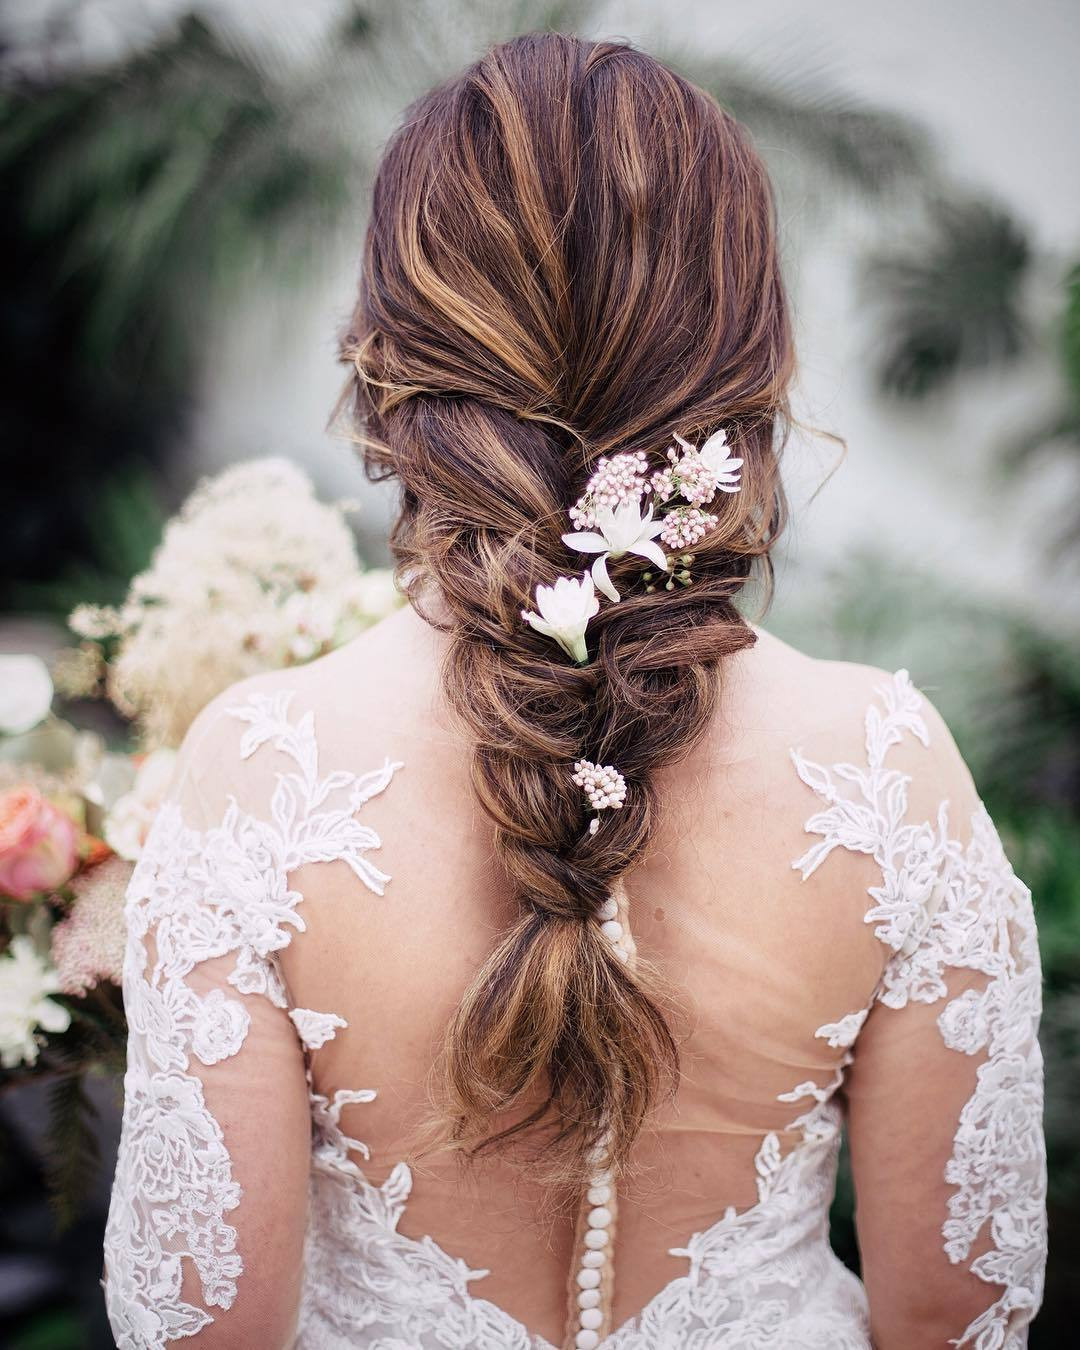 Wedding Hairstyles With Braids For Long Hair  47 Stunning Wedding Hairstyles All Brides Will Love in 2019